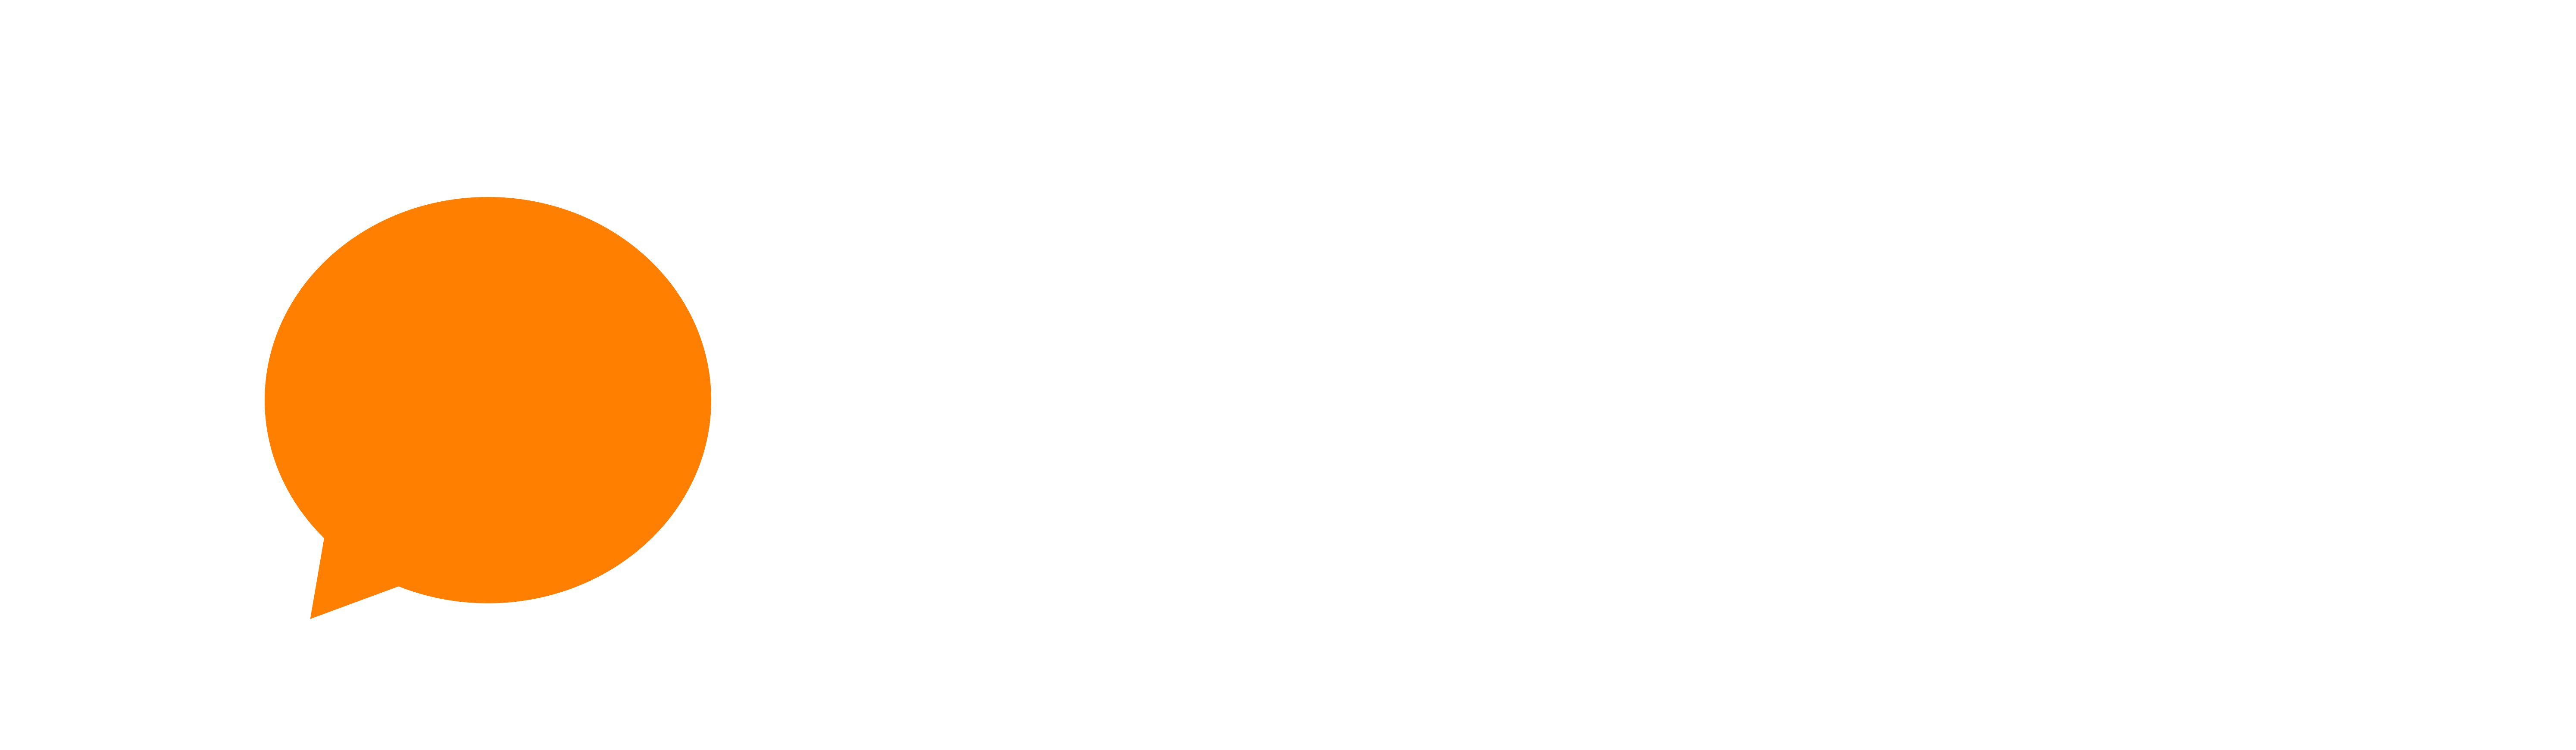 marketing nas redes sociais - logo 2019 branca